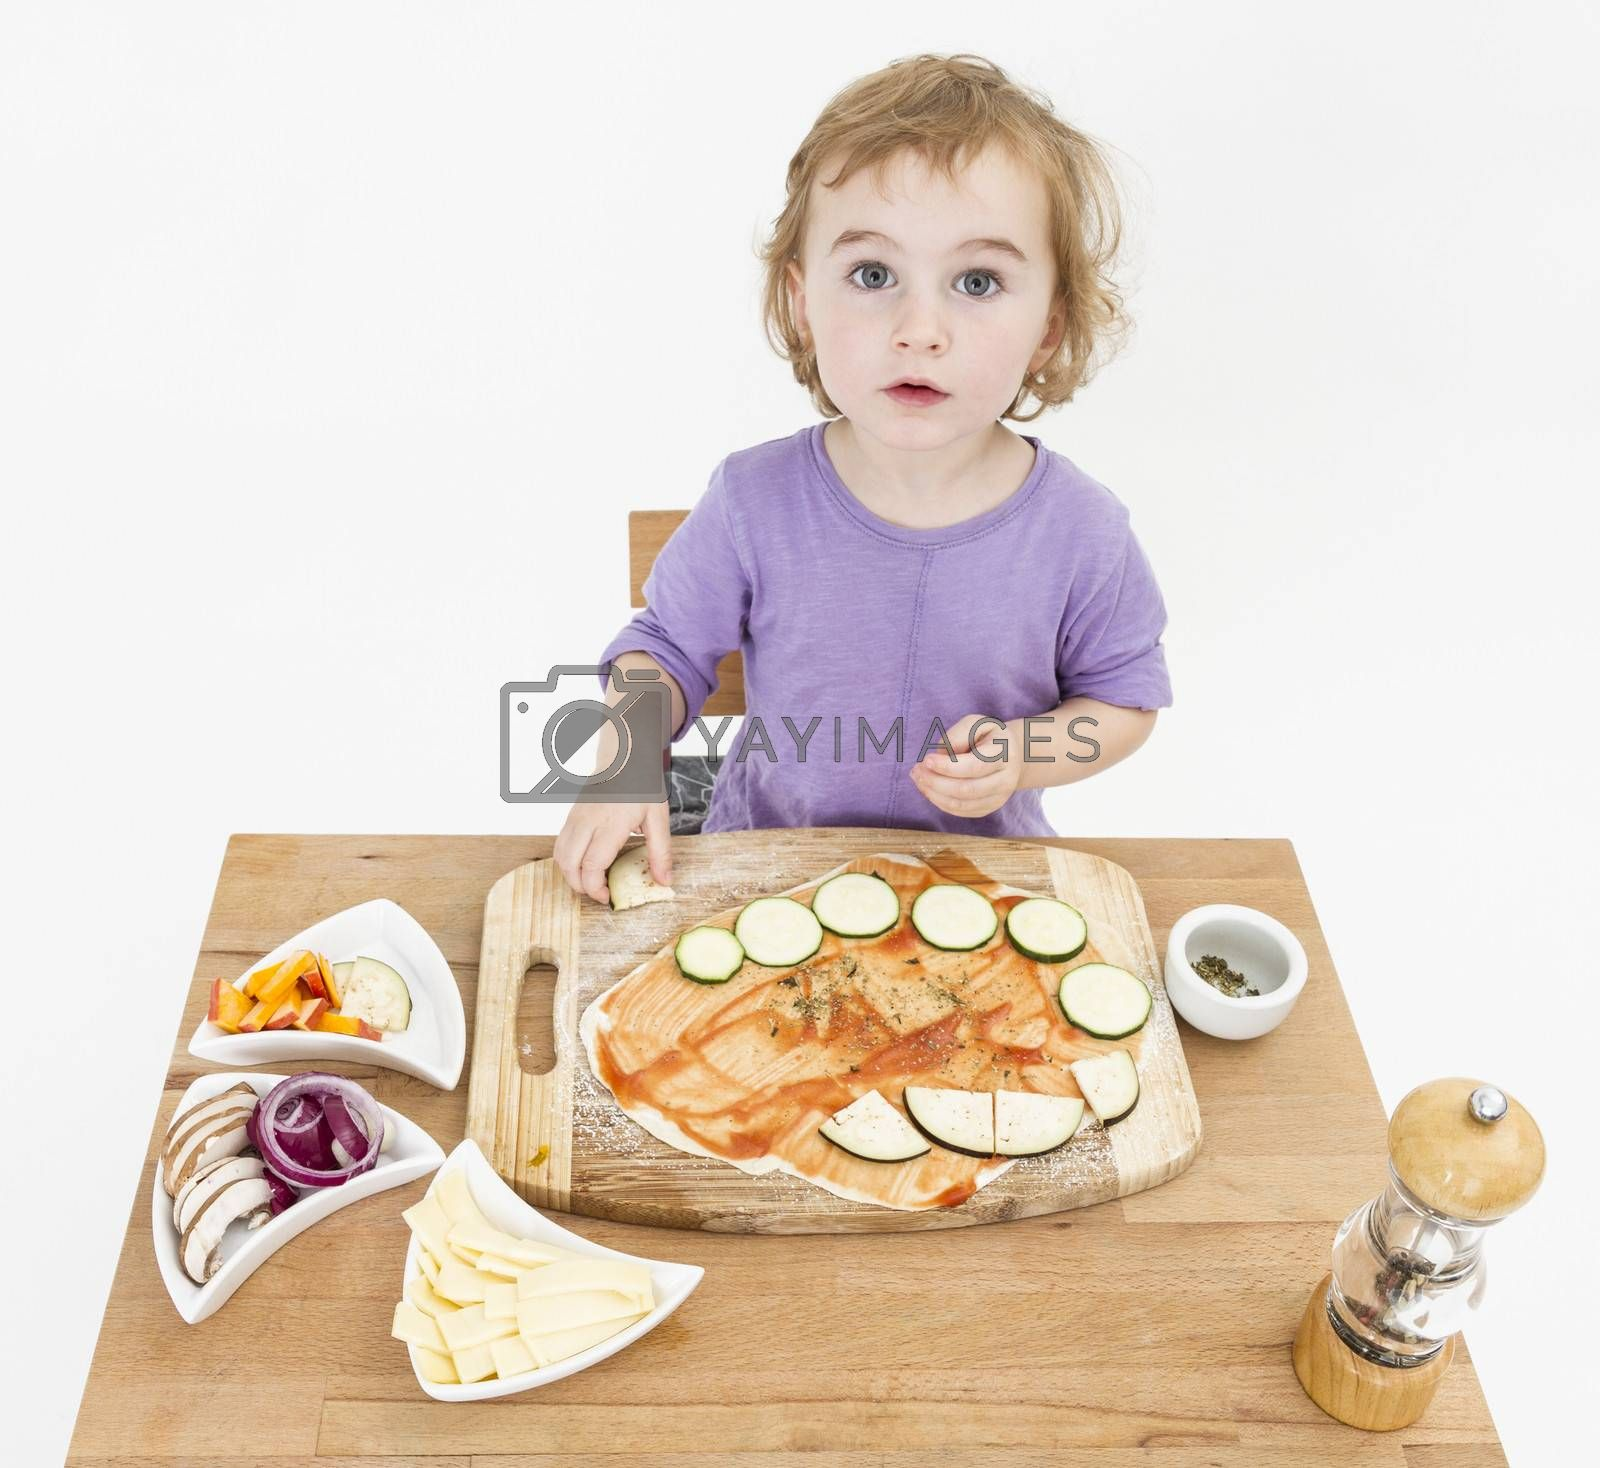 Royalty free image of child making pizza by gewoldi